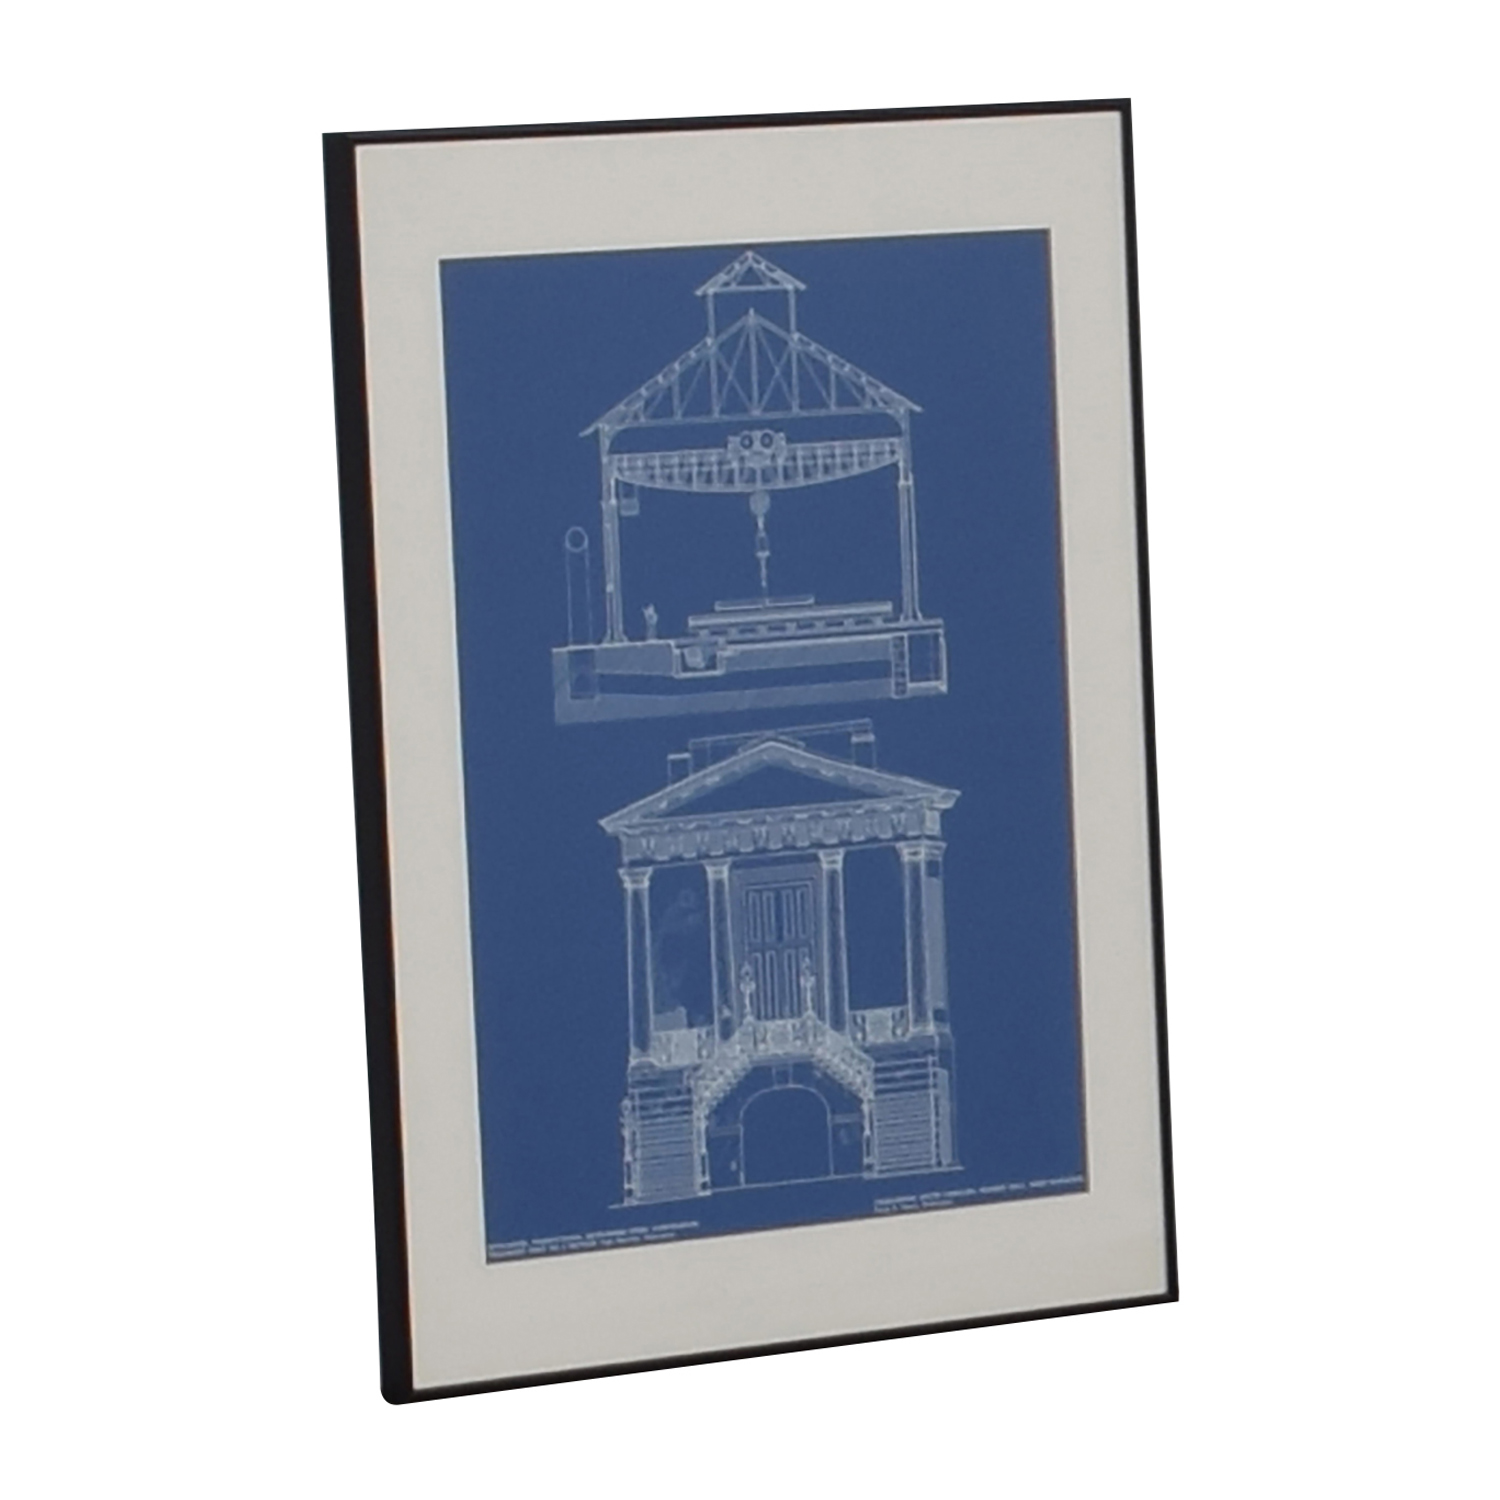 buy  Market Hall Charleston South Carolina Blueprint Framed Print online